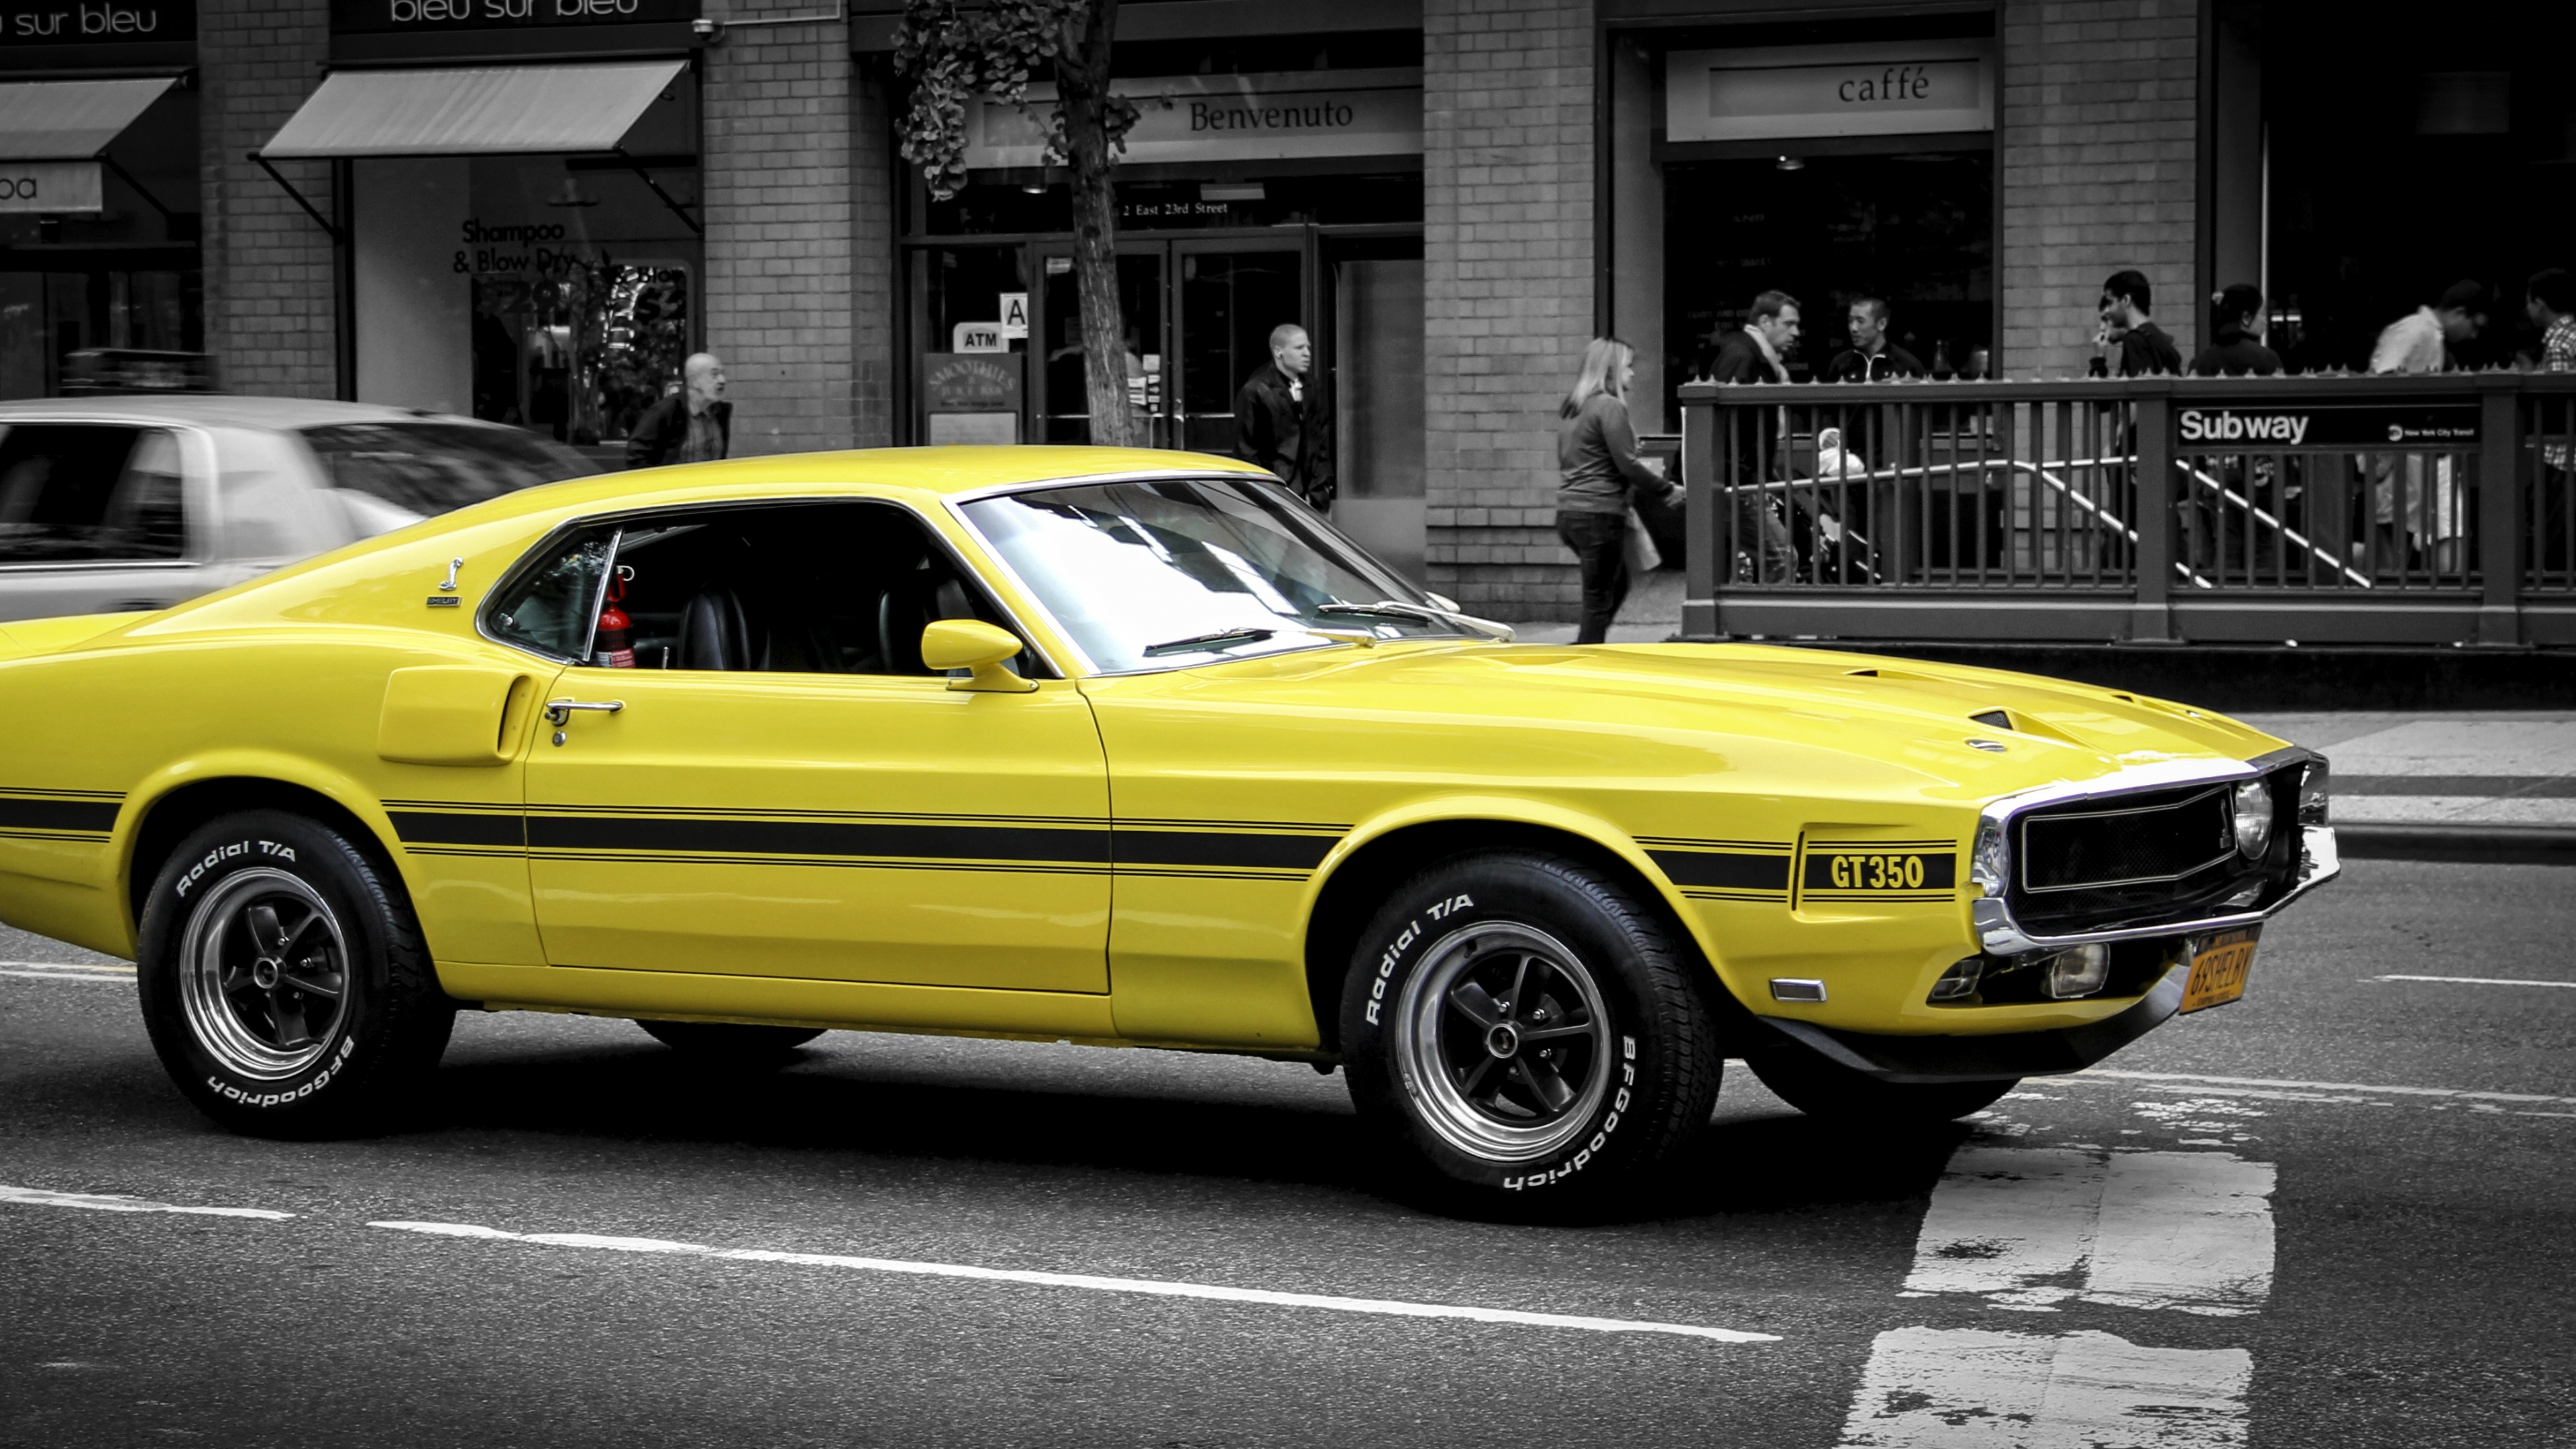 american muscle car wallpaper free download